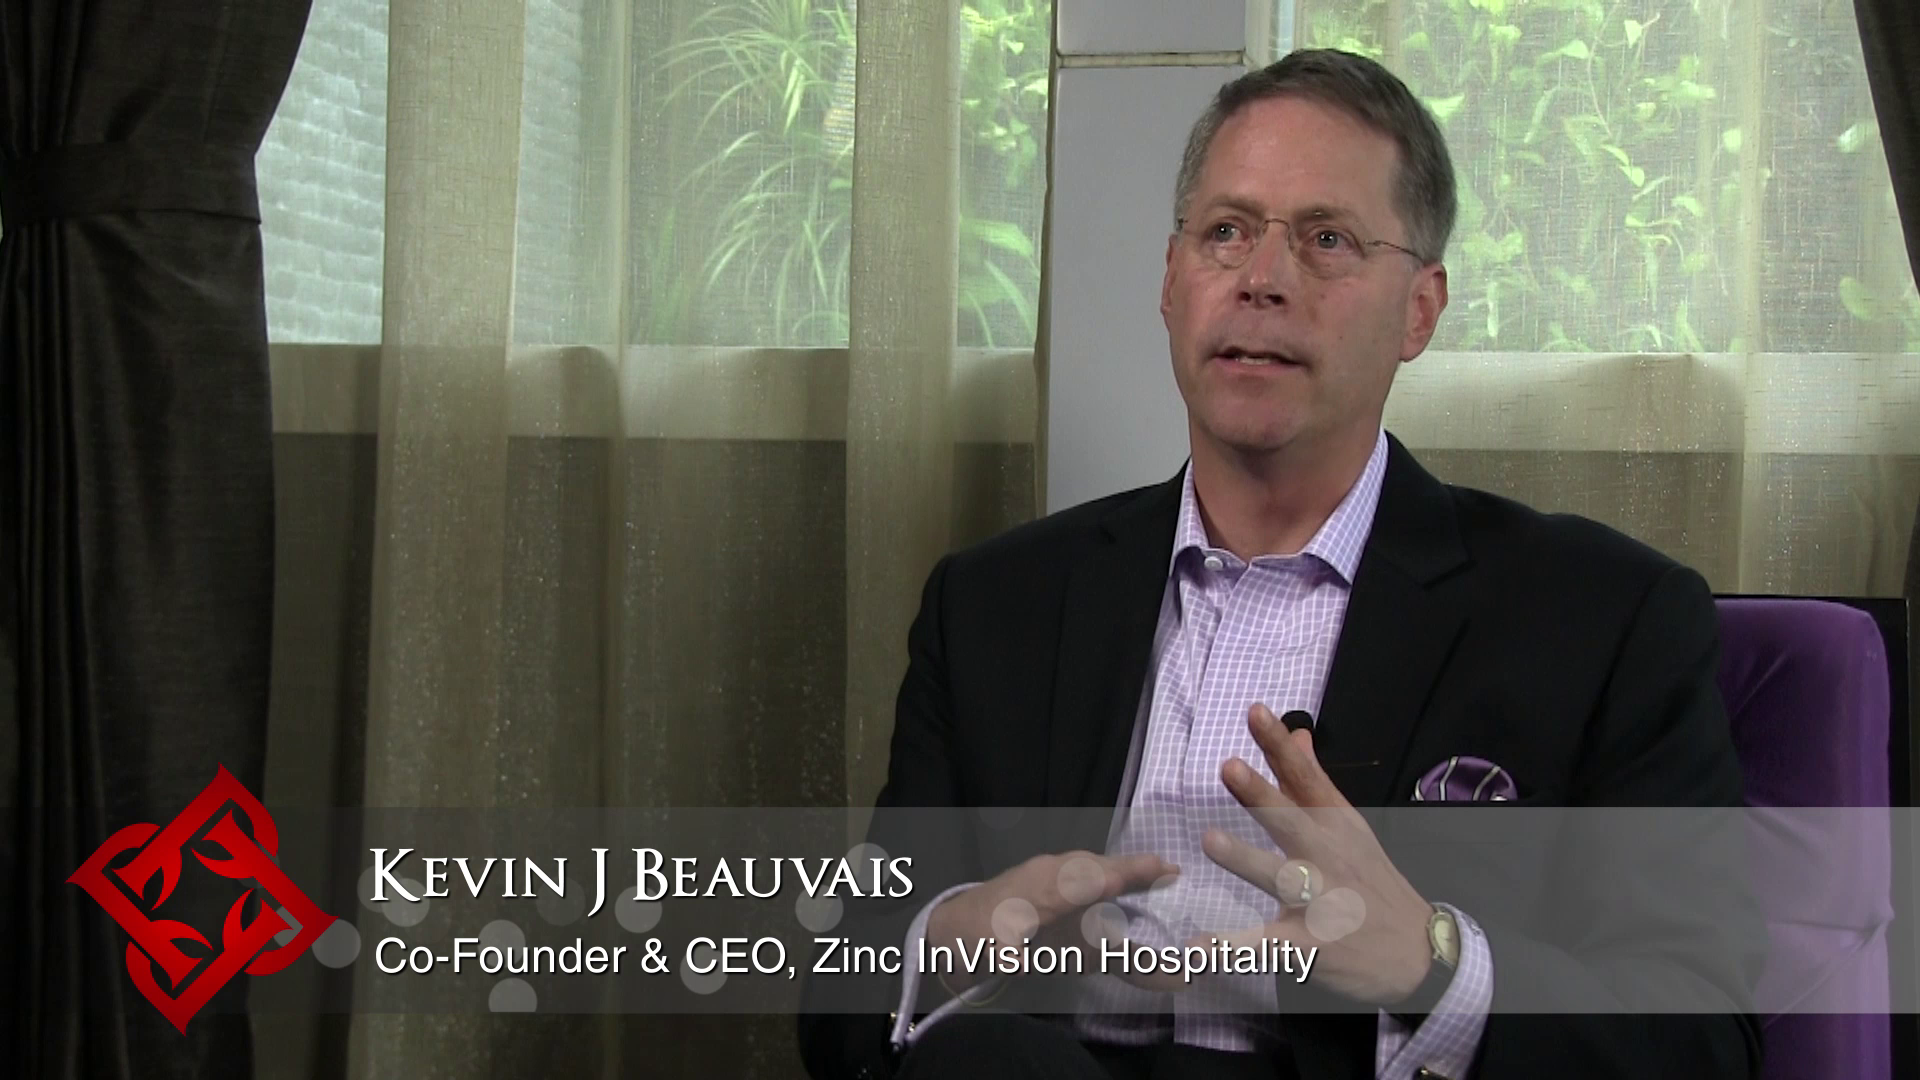 Zinc InVision Co-Founder & CEO Kevin Beauvais On Branding